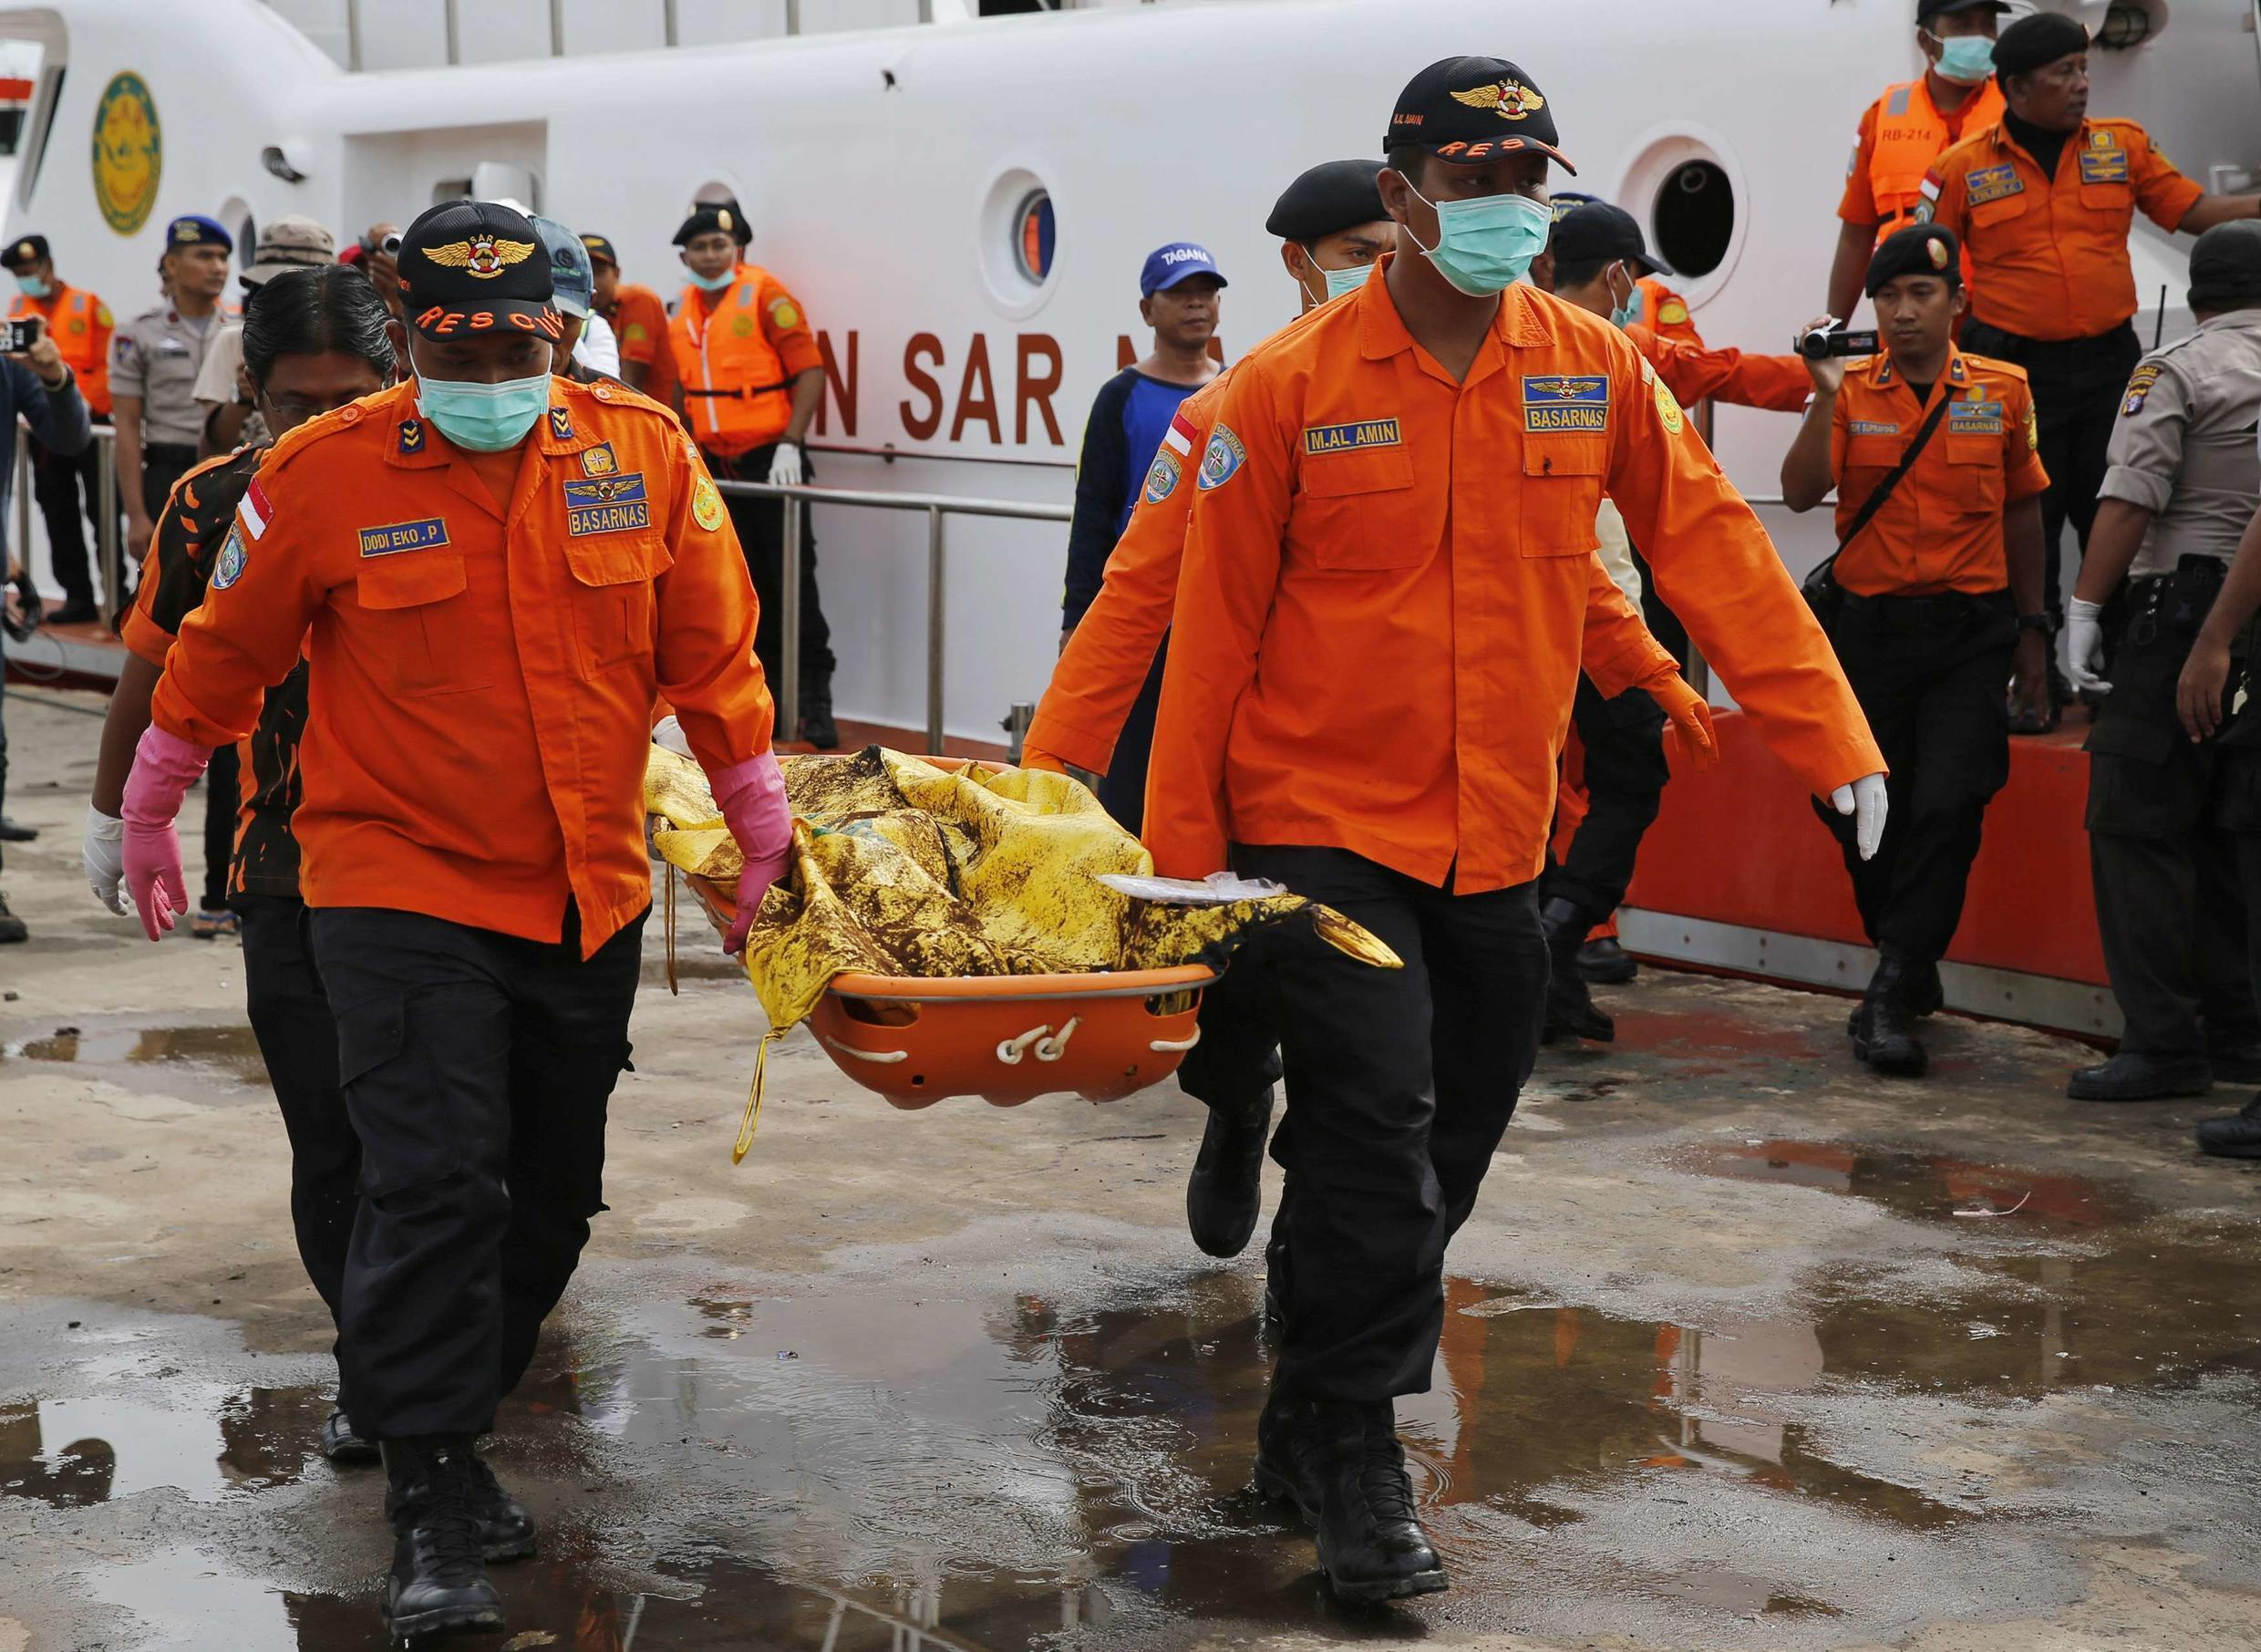 Indonesian rescue workers unload bodies taken from the wreckage of AirAsia flight QZ8501